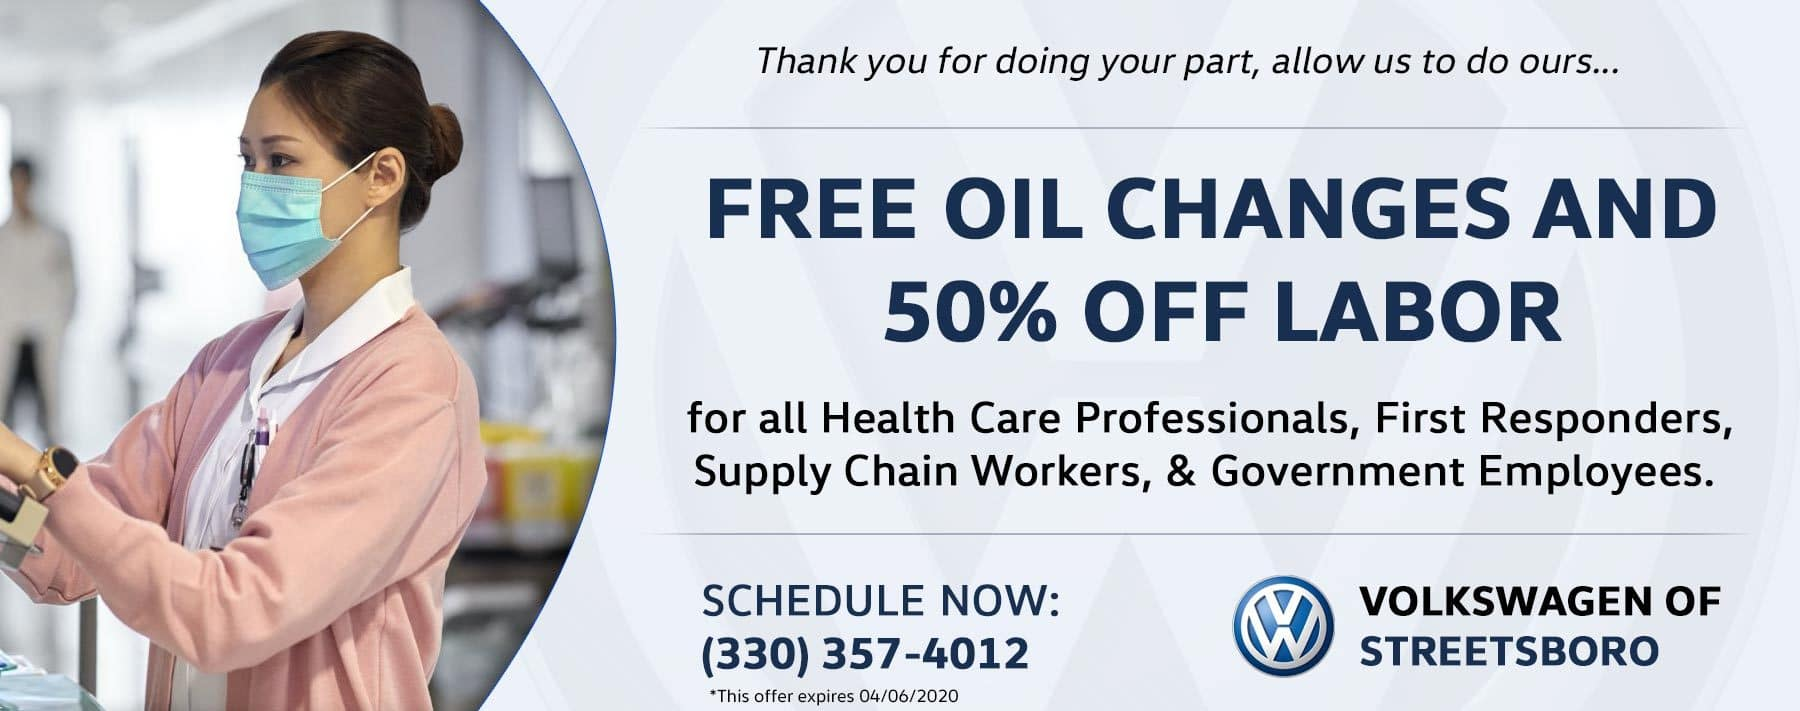 Free Oil Changes + 50% off labor for all healthcare workers!